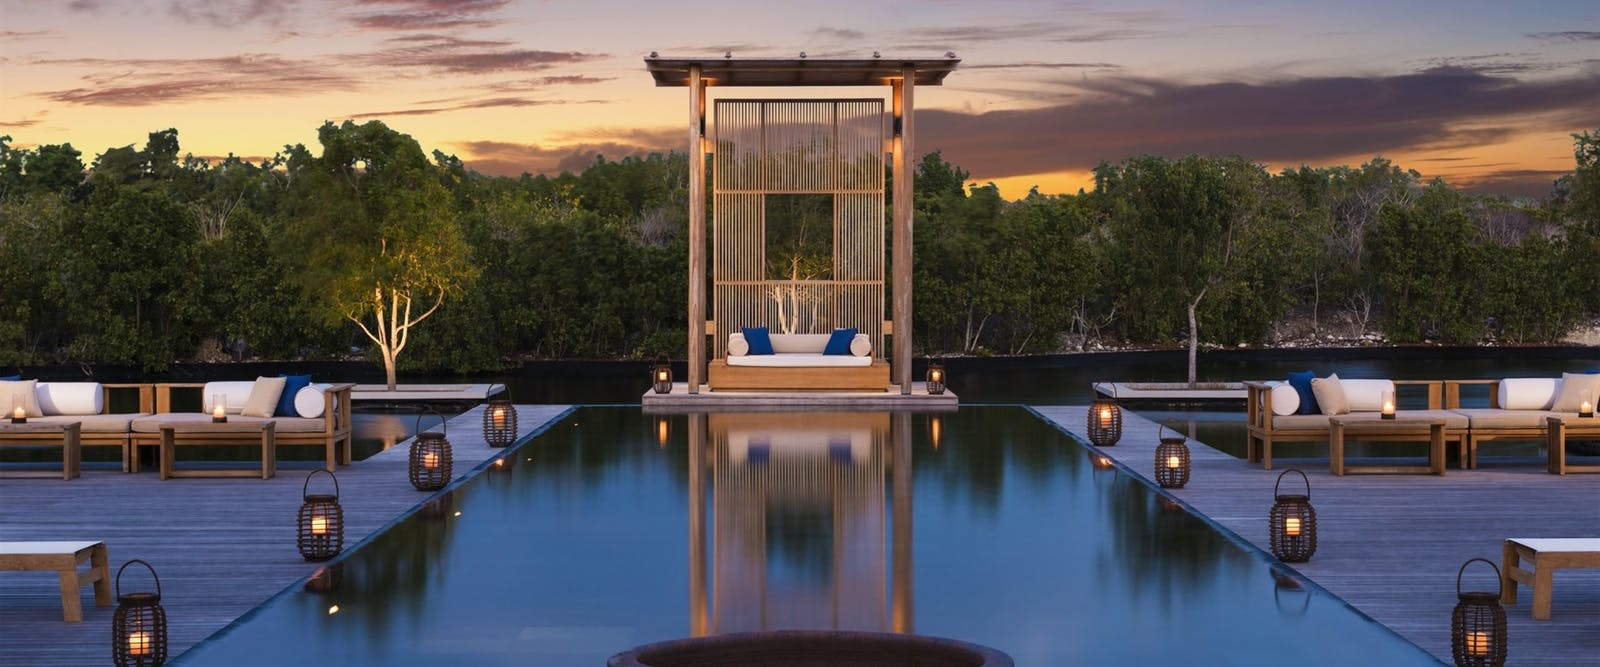 Villa 9 Swimming Pool at Amanyara, Turks and Caicos